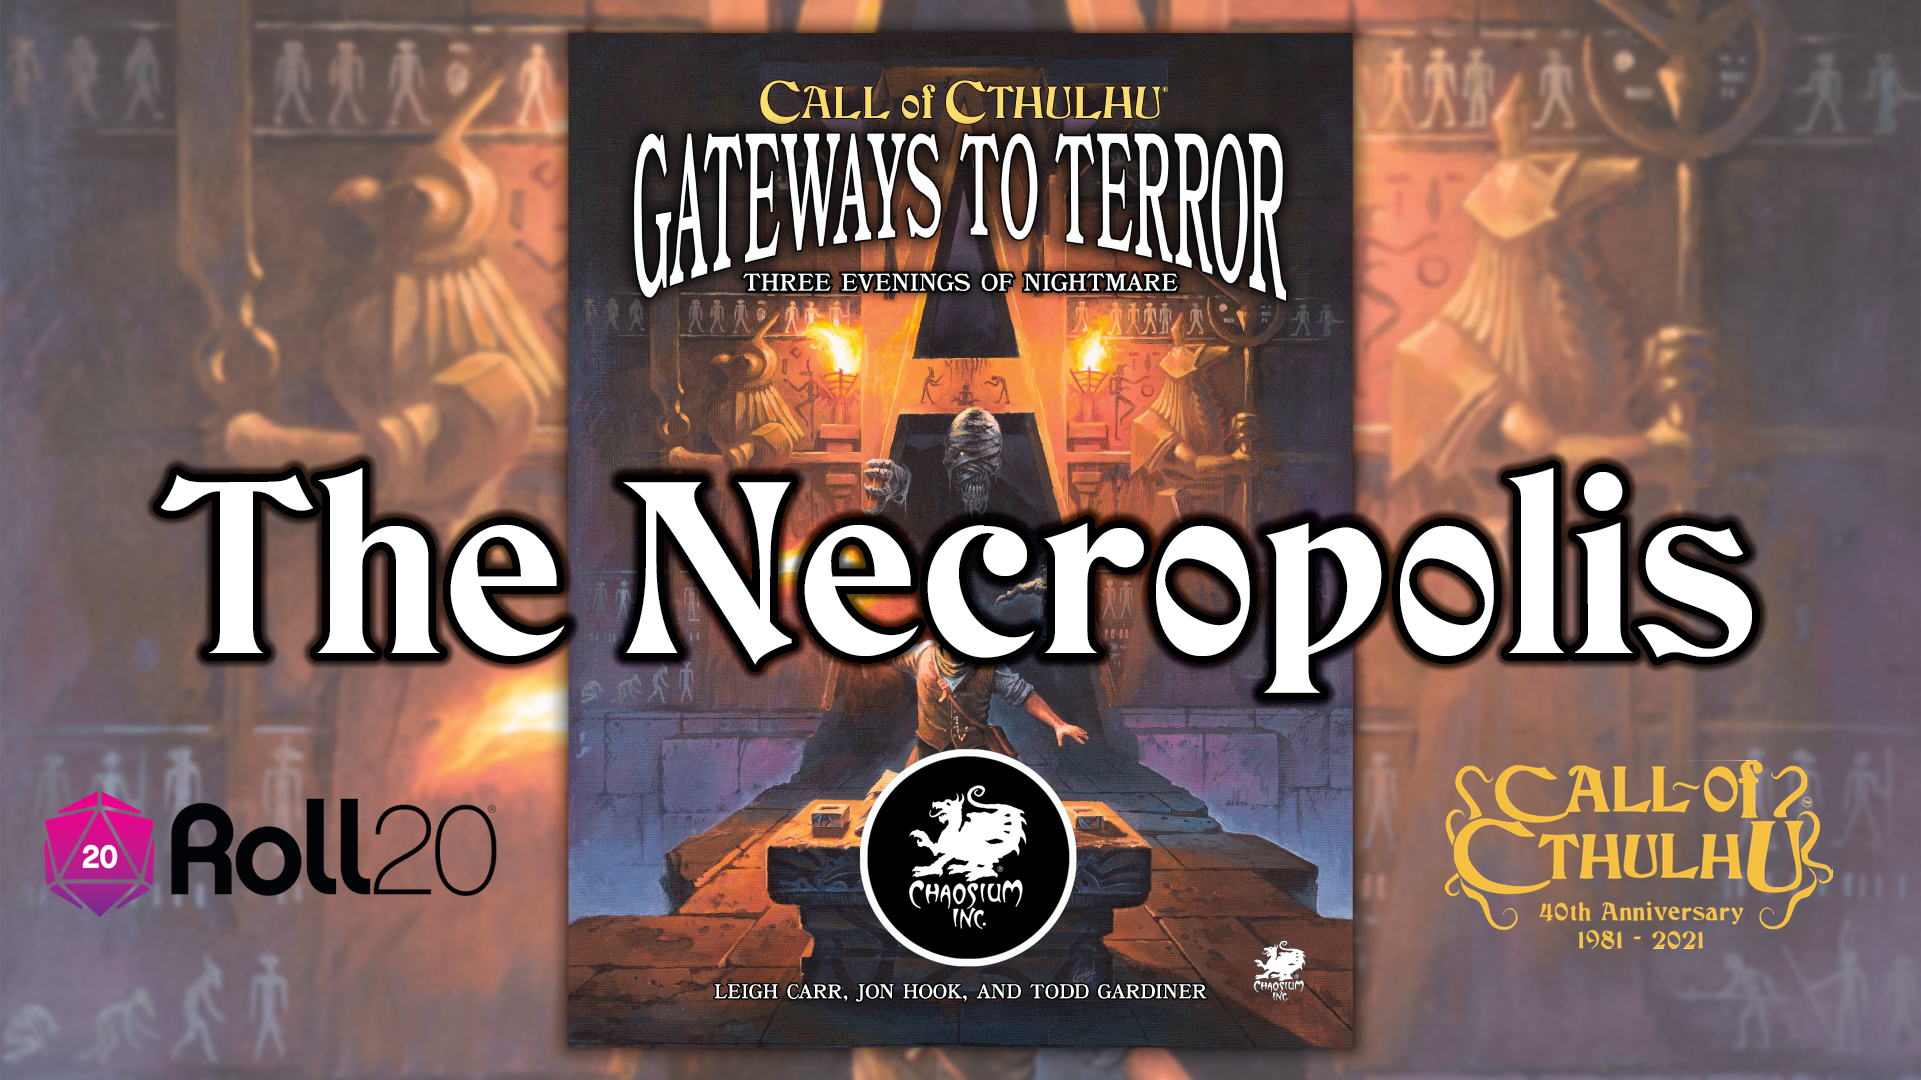 [Chaosium] Cthulhu Curious? - Chaosium Plays 'The Necropolis' for 24 hours on Roll20 for Halloween